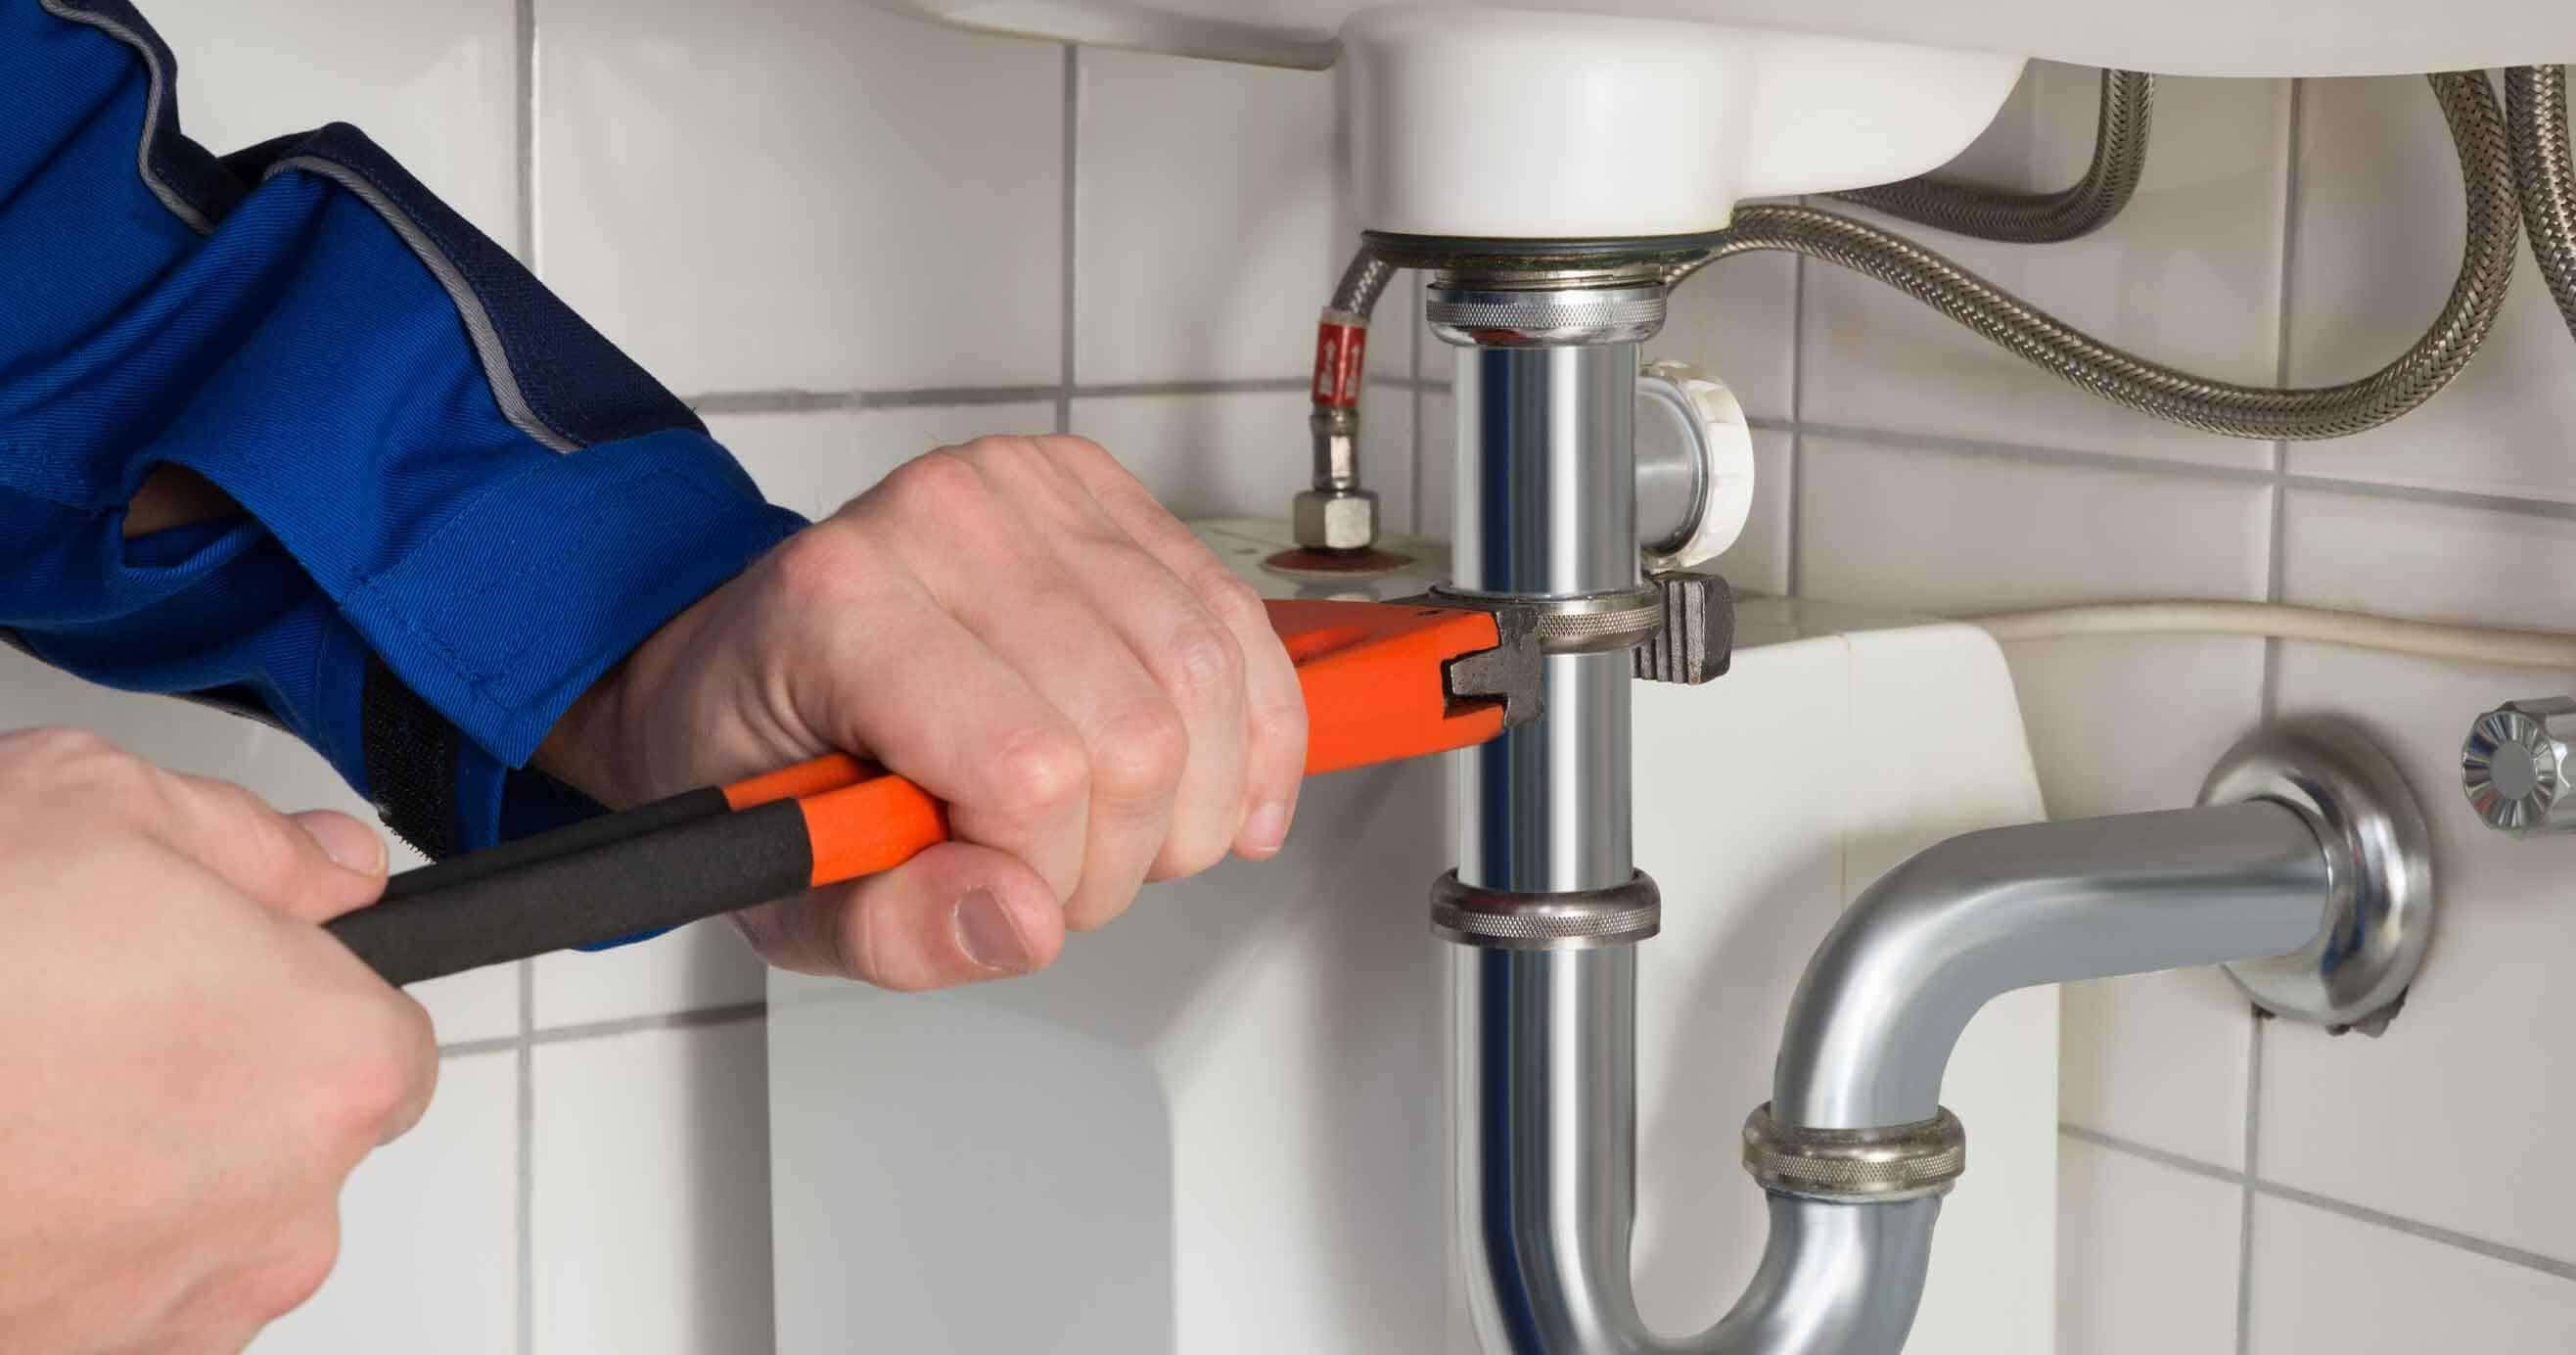 Common Plumbing Problems: How to Repair Leaks